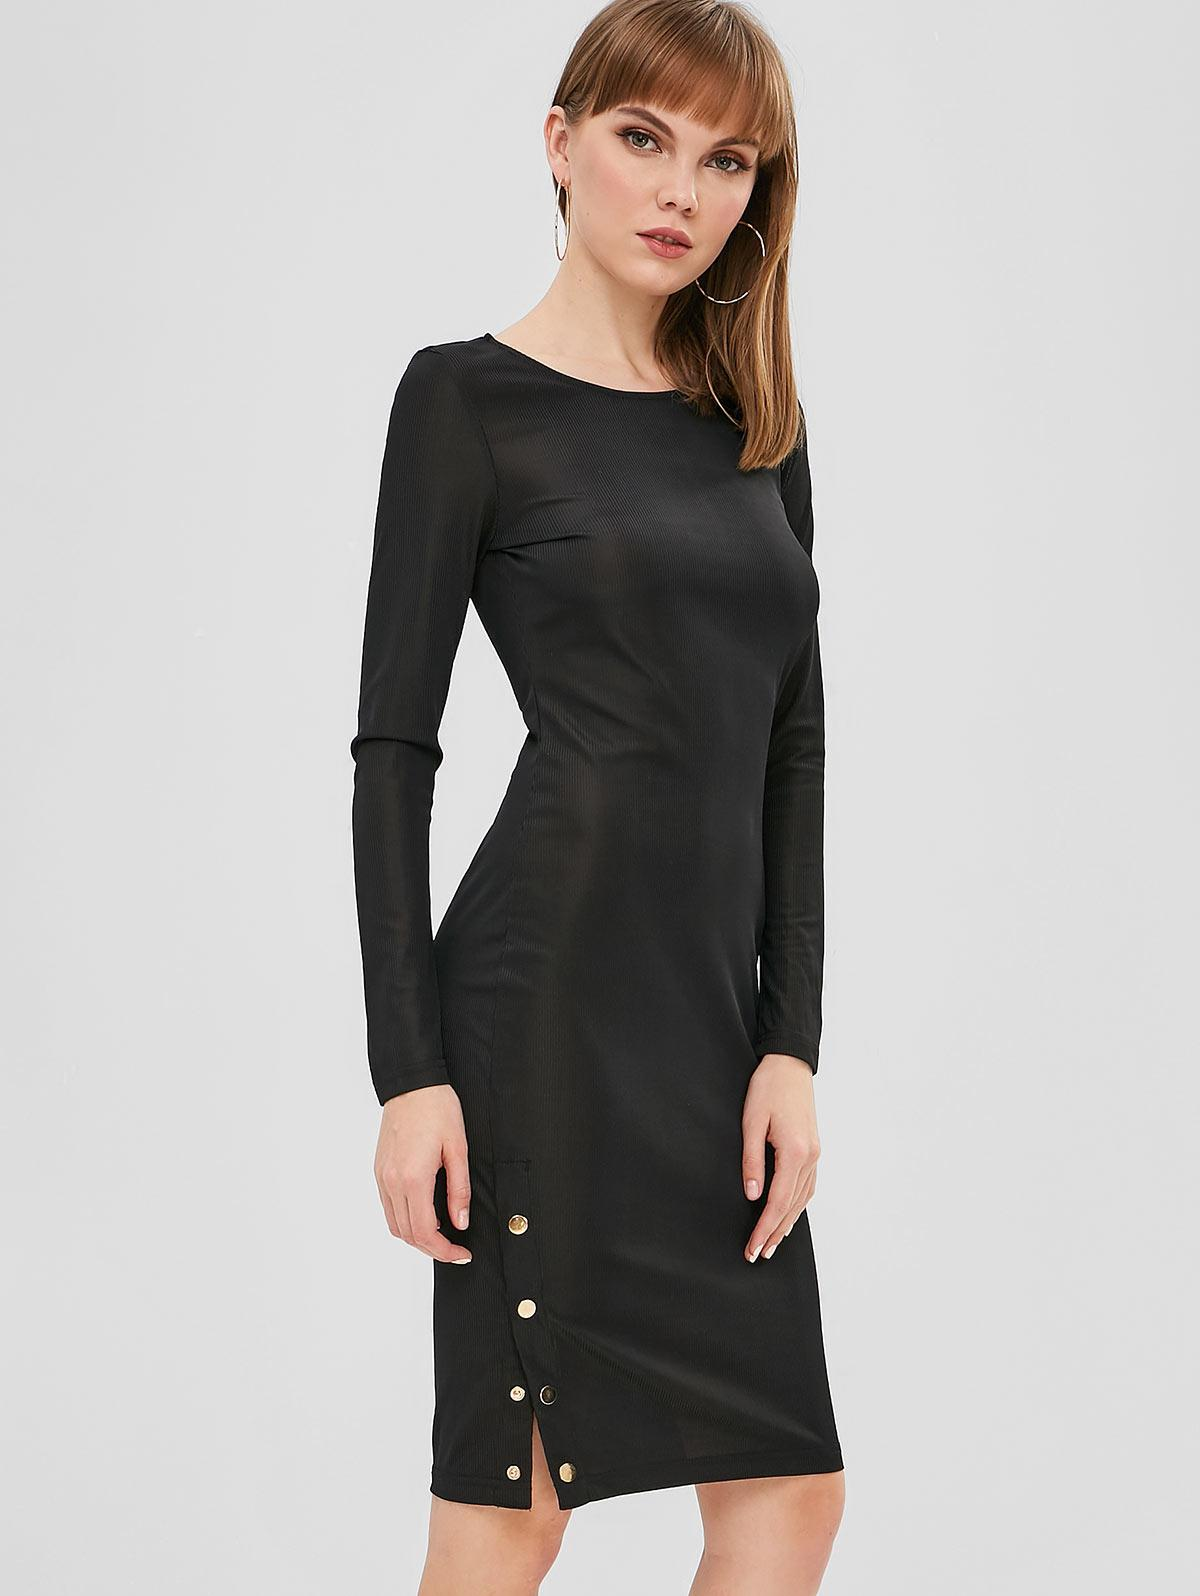 ZAFUL Long Sleeve Bodycon Tight Dress